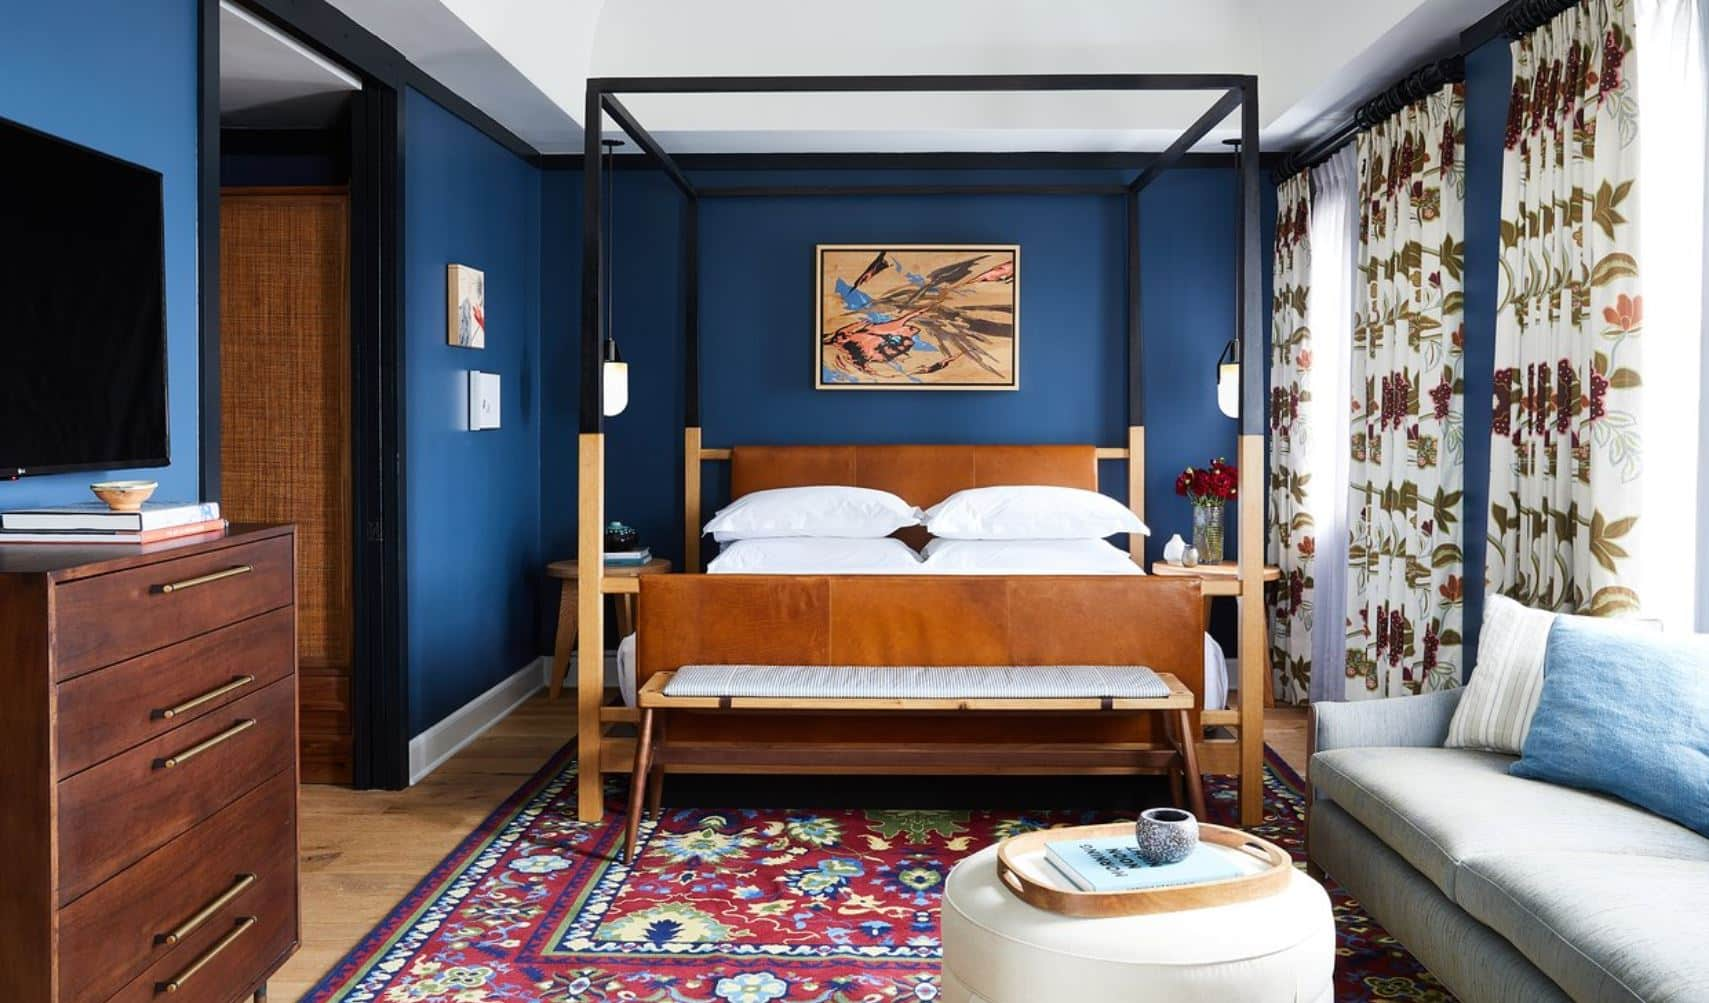 The 7 Best Hotels In Baltimore